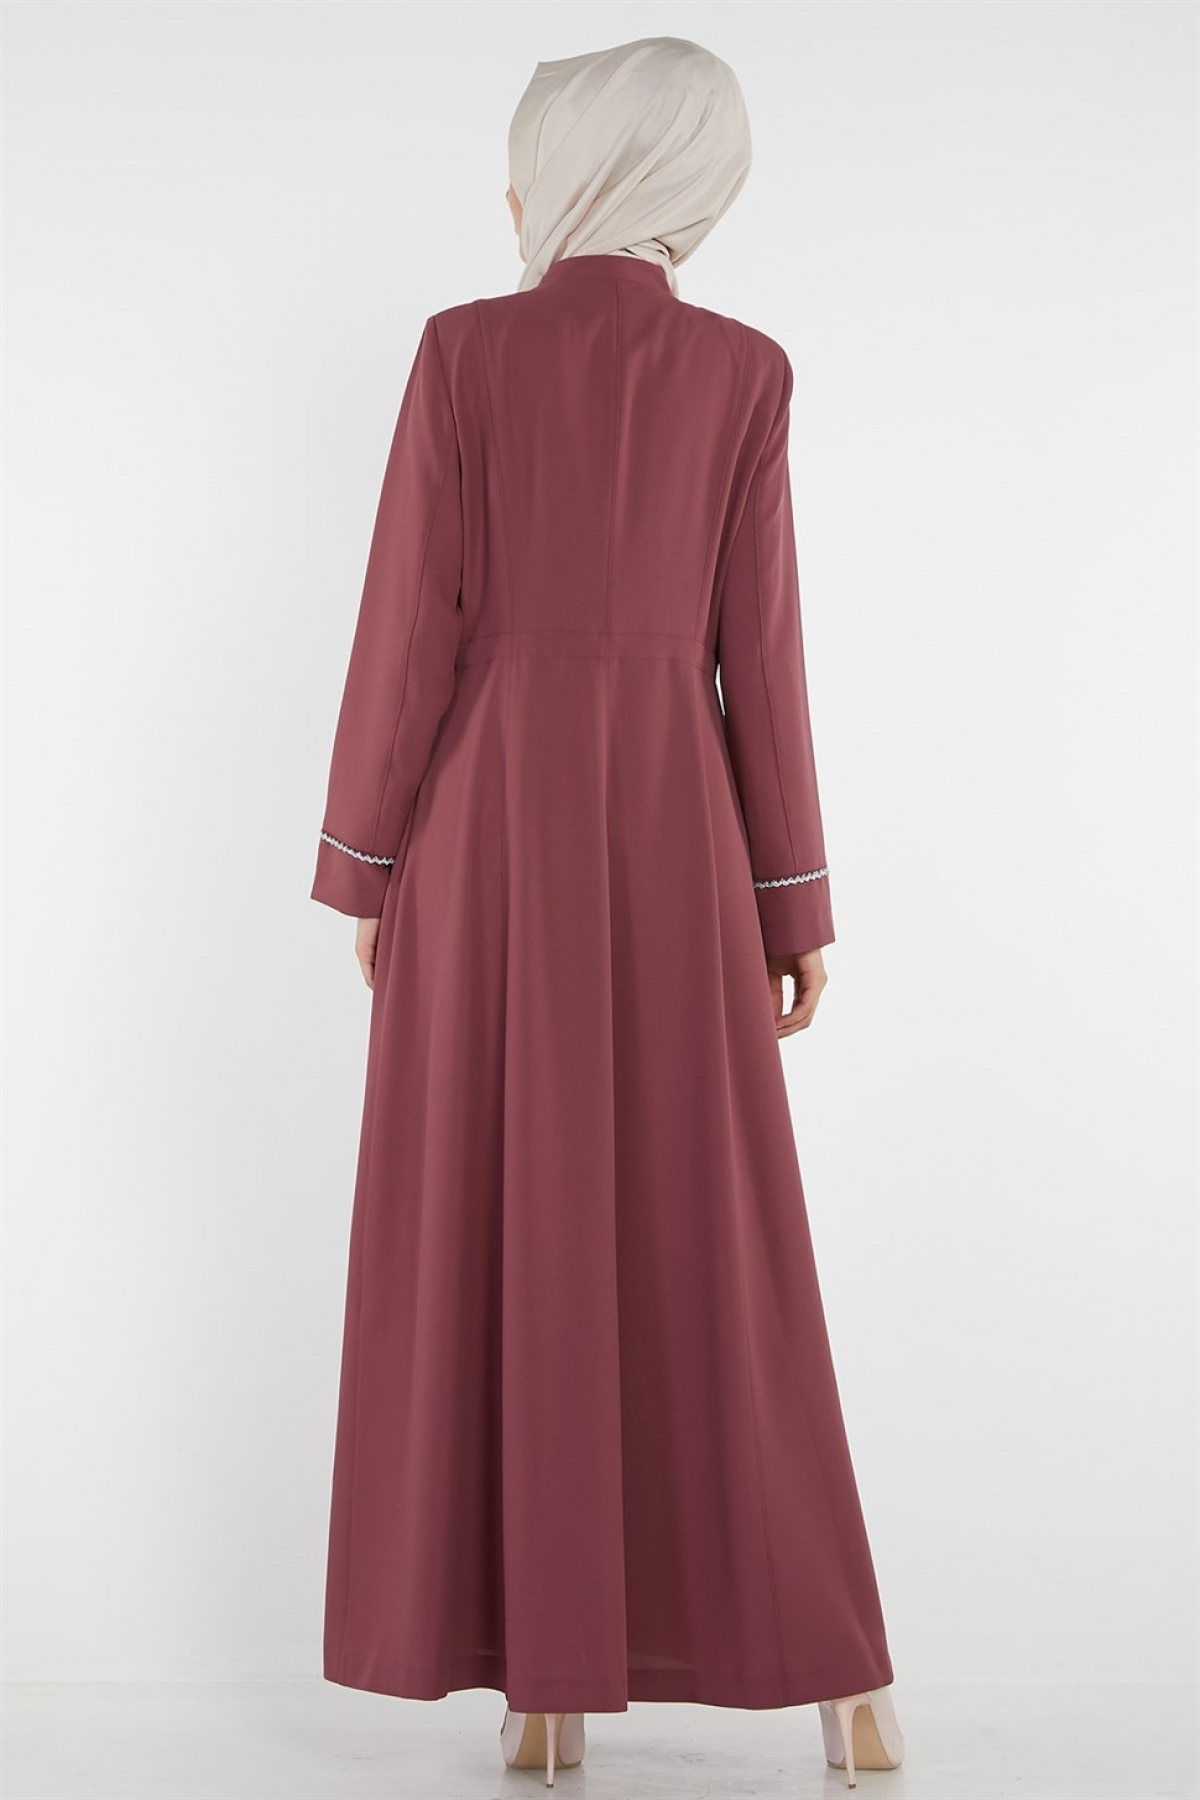 Armine Women's Abaya -  Red